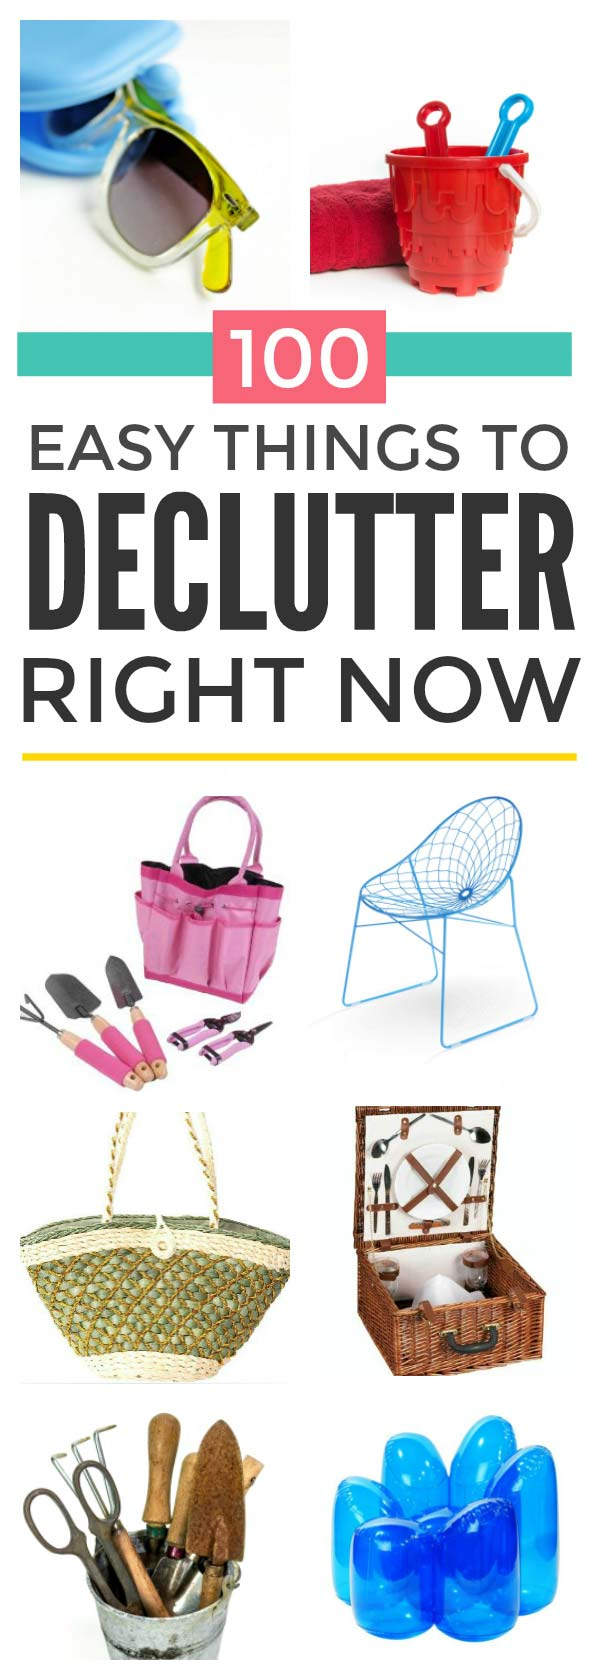 100 easy things to declutter right now to give you space to enjoy the summer #declutter #clutter #sellclutter #makemoney #simplify #organize